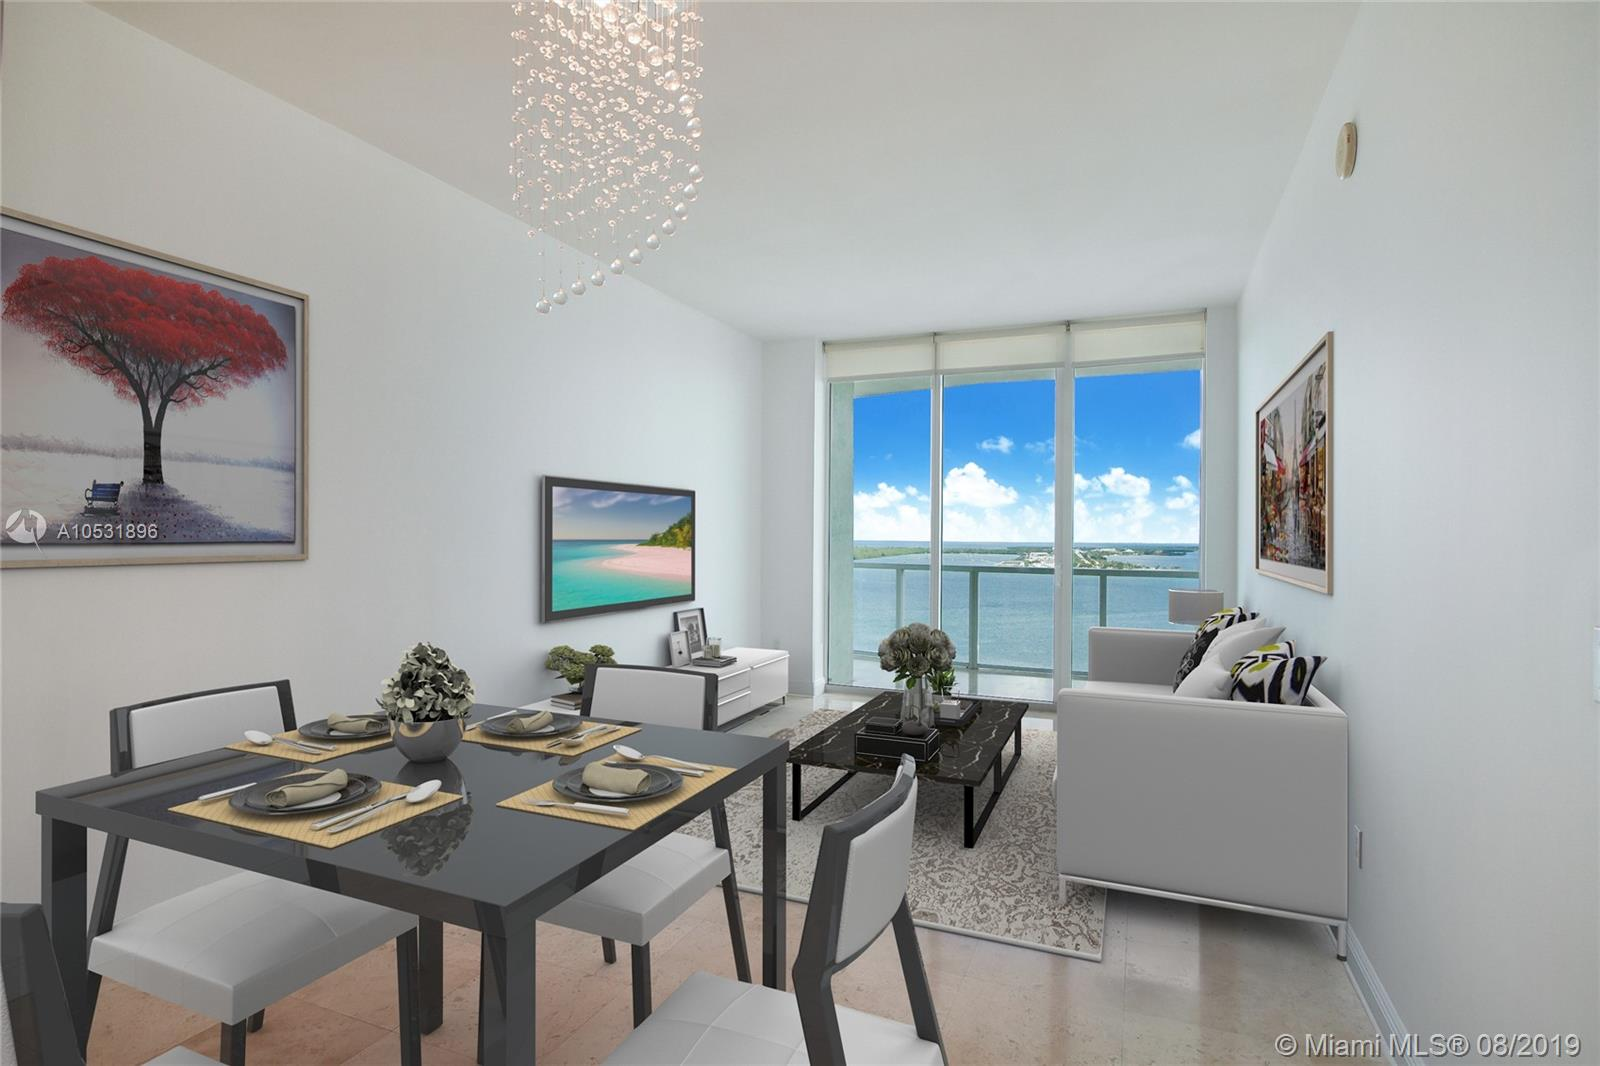 218 SE 14th St, Miami, Fl 33131, Emerald at Brickell #2305, Brickell, Miami A10531896 image #4